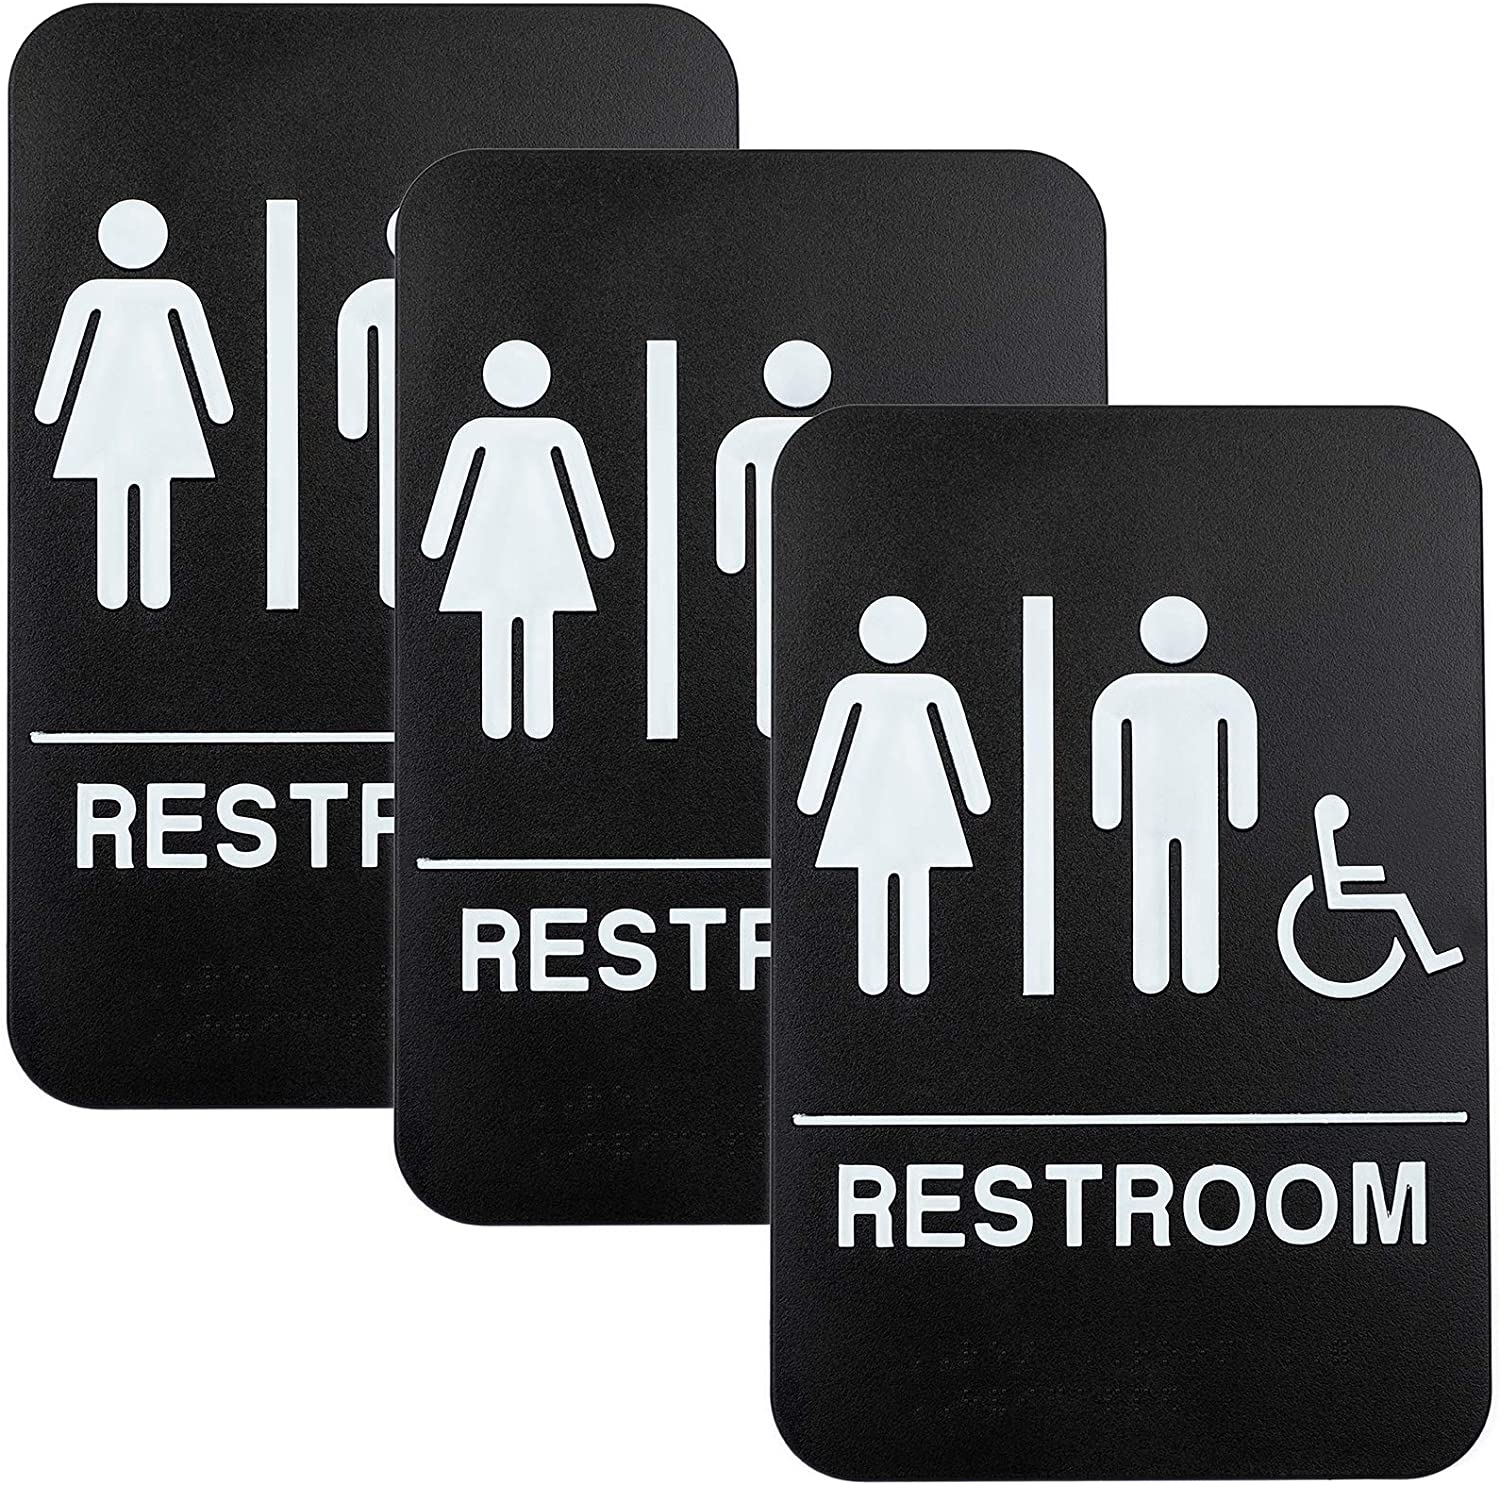 "Plastic Restroom Sign: Easy to Mount with Braille (ADA Compliant), Great for Business - 6""x9"", Unisex, Handicap - Pack of 3"